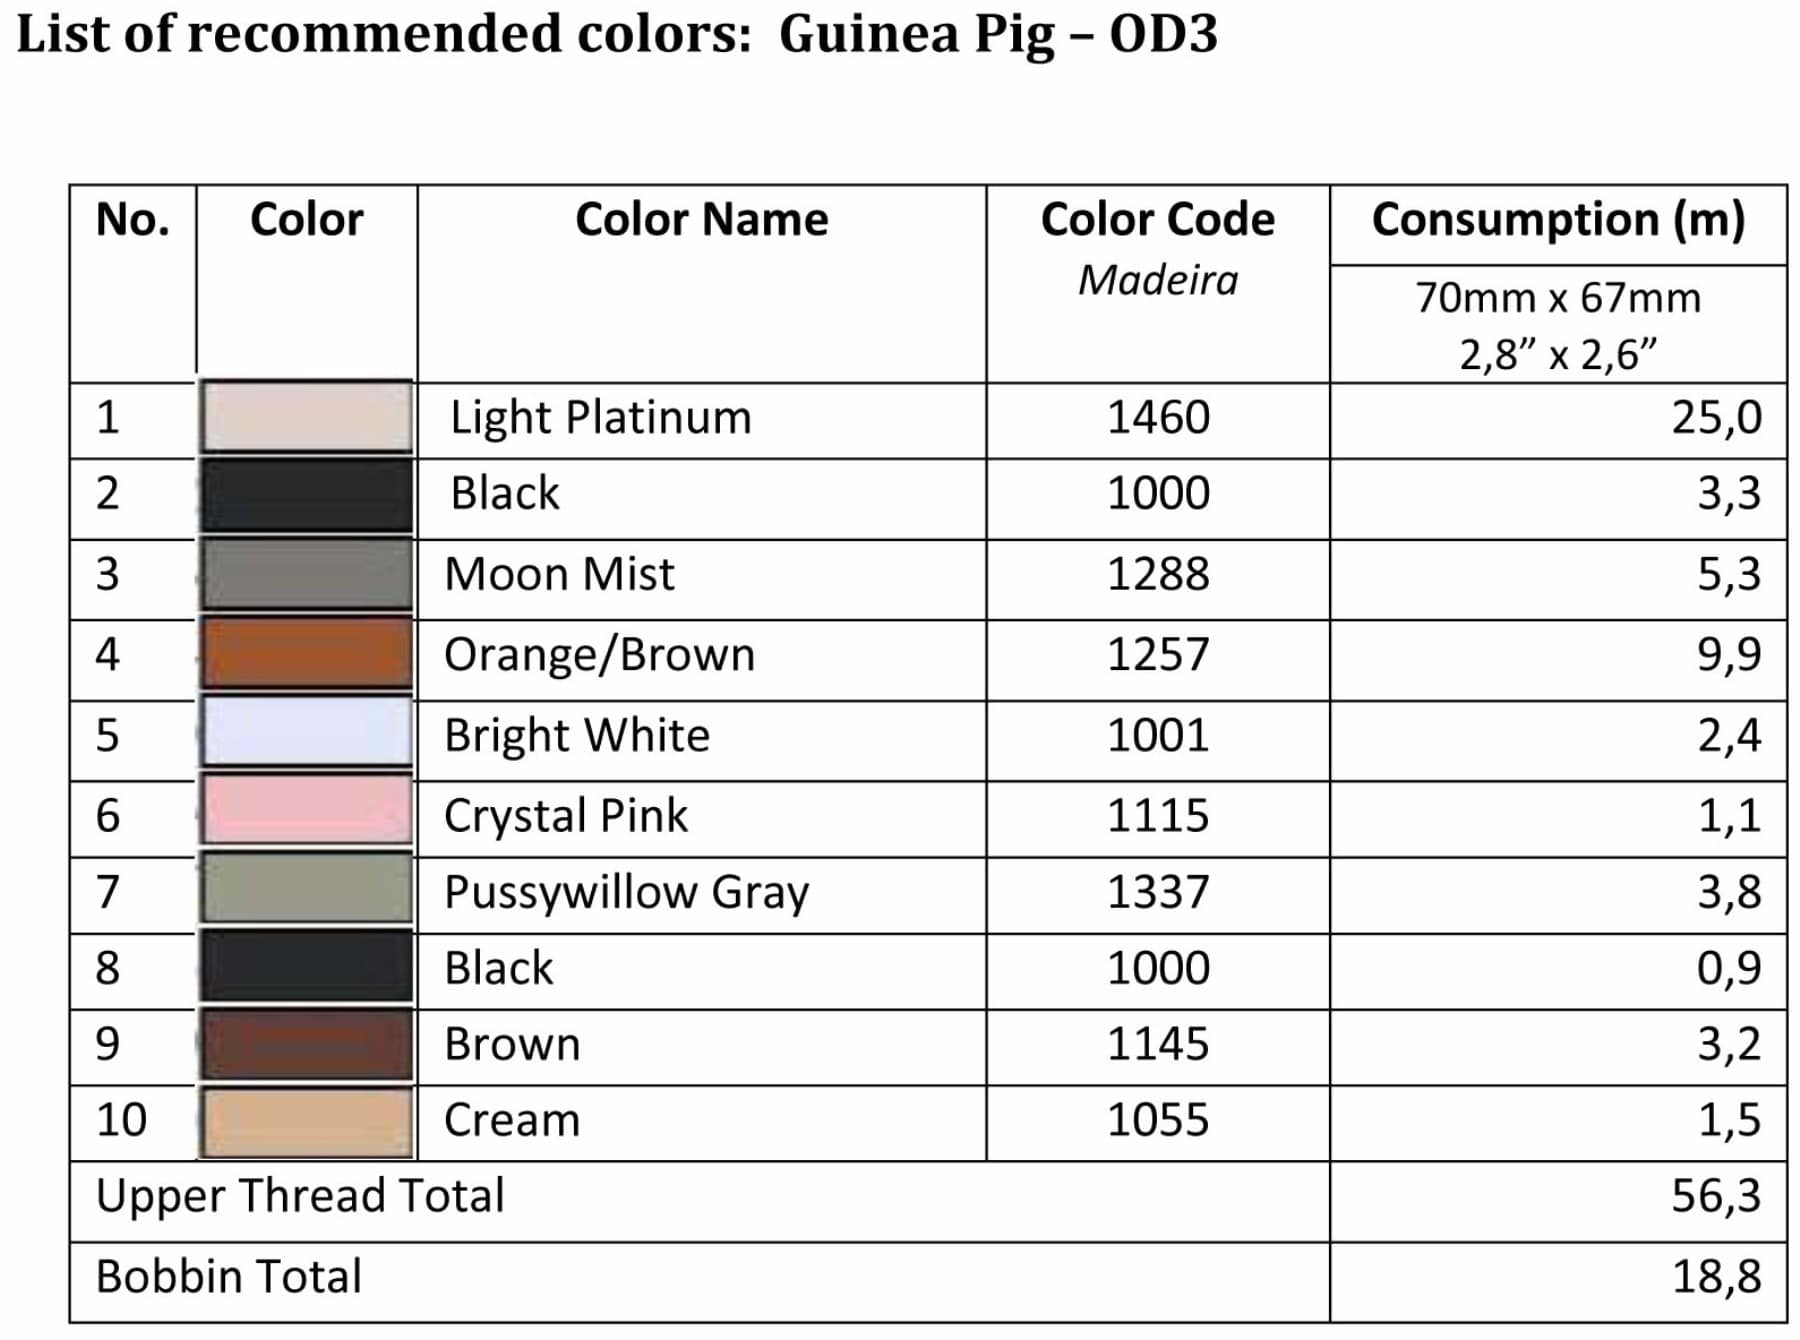 List of recommended colors - Guinea Pig - OD3